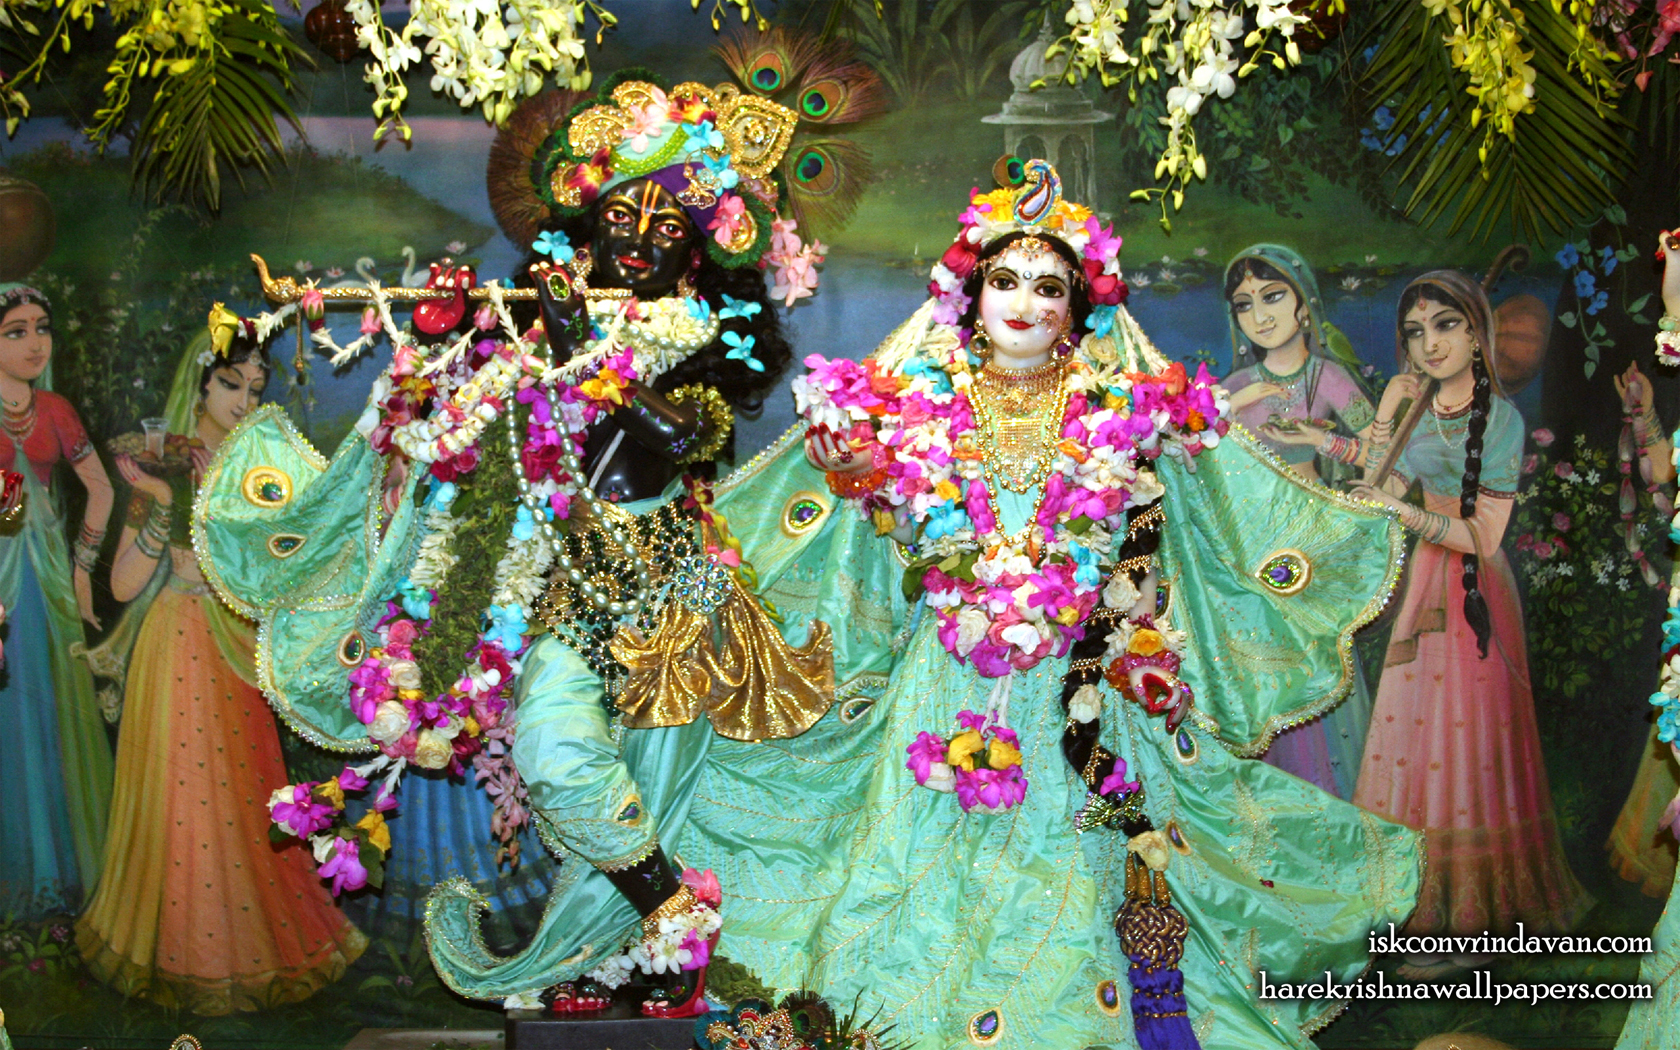 Sri Sri Radha Shyamsundar Wallpaper (005) Size 1680x1050 Download